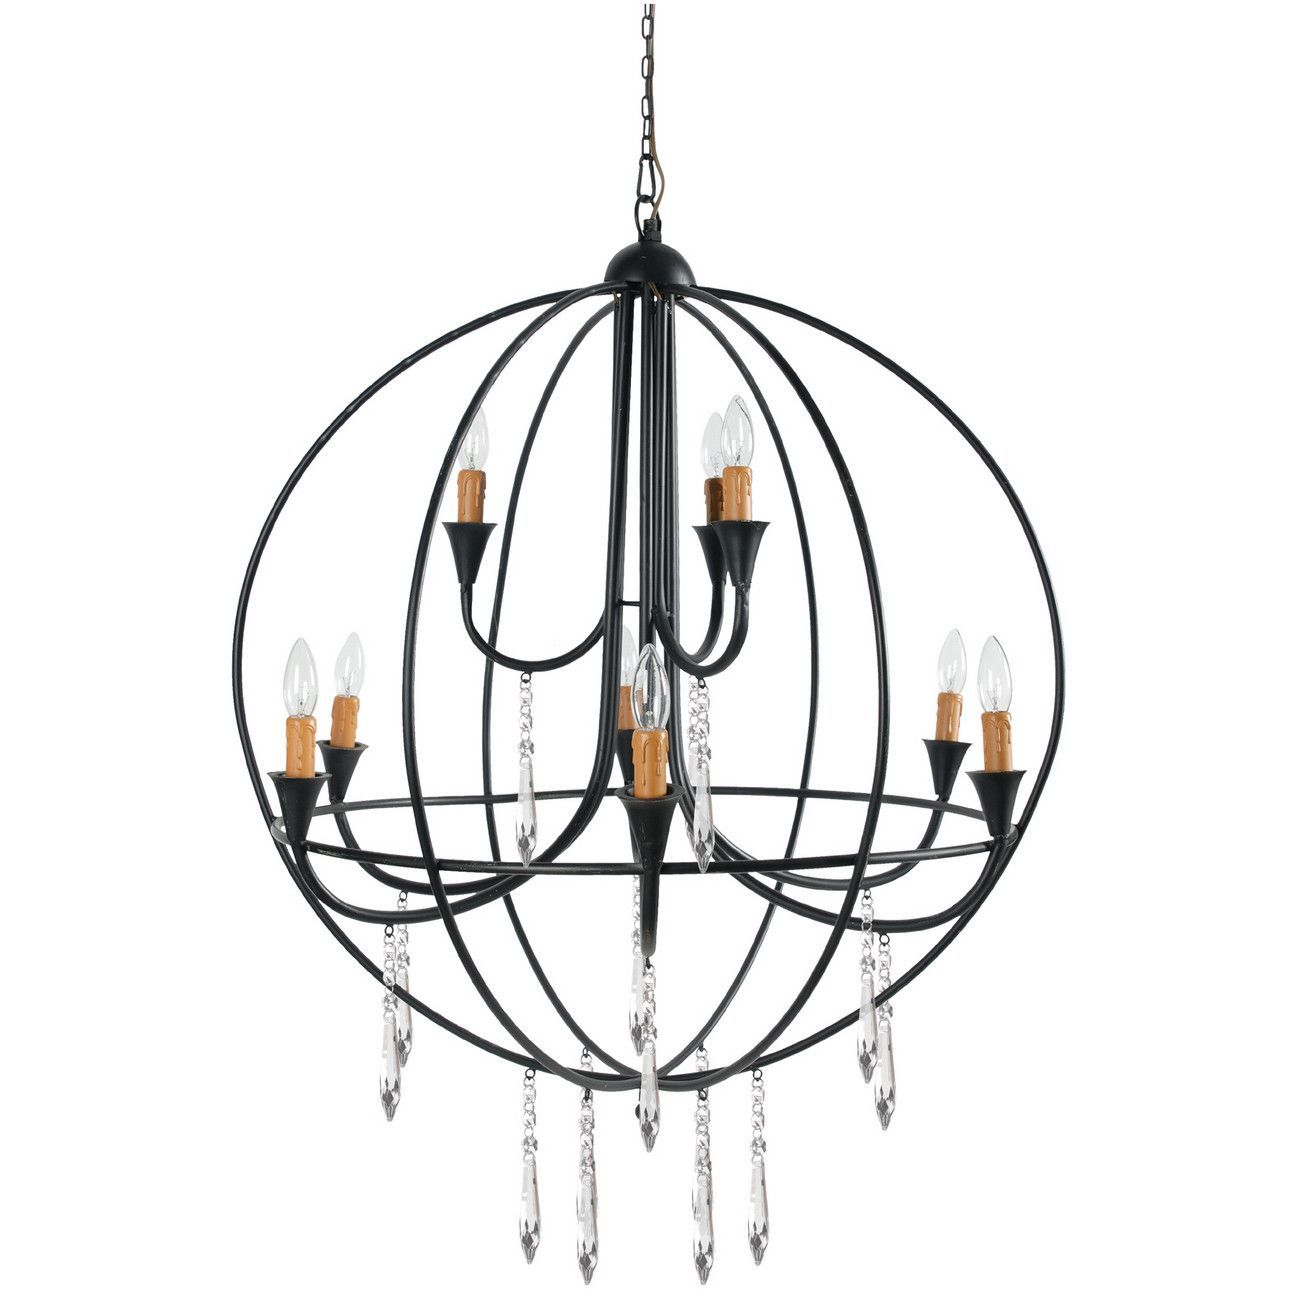 A B Home Ballard 9 Light Chandelier Black Chandelier Candle Style Chandelier A B Home